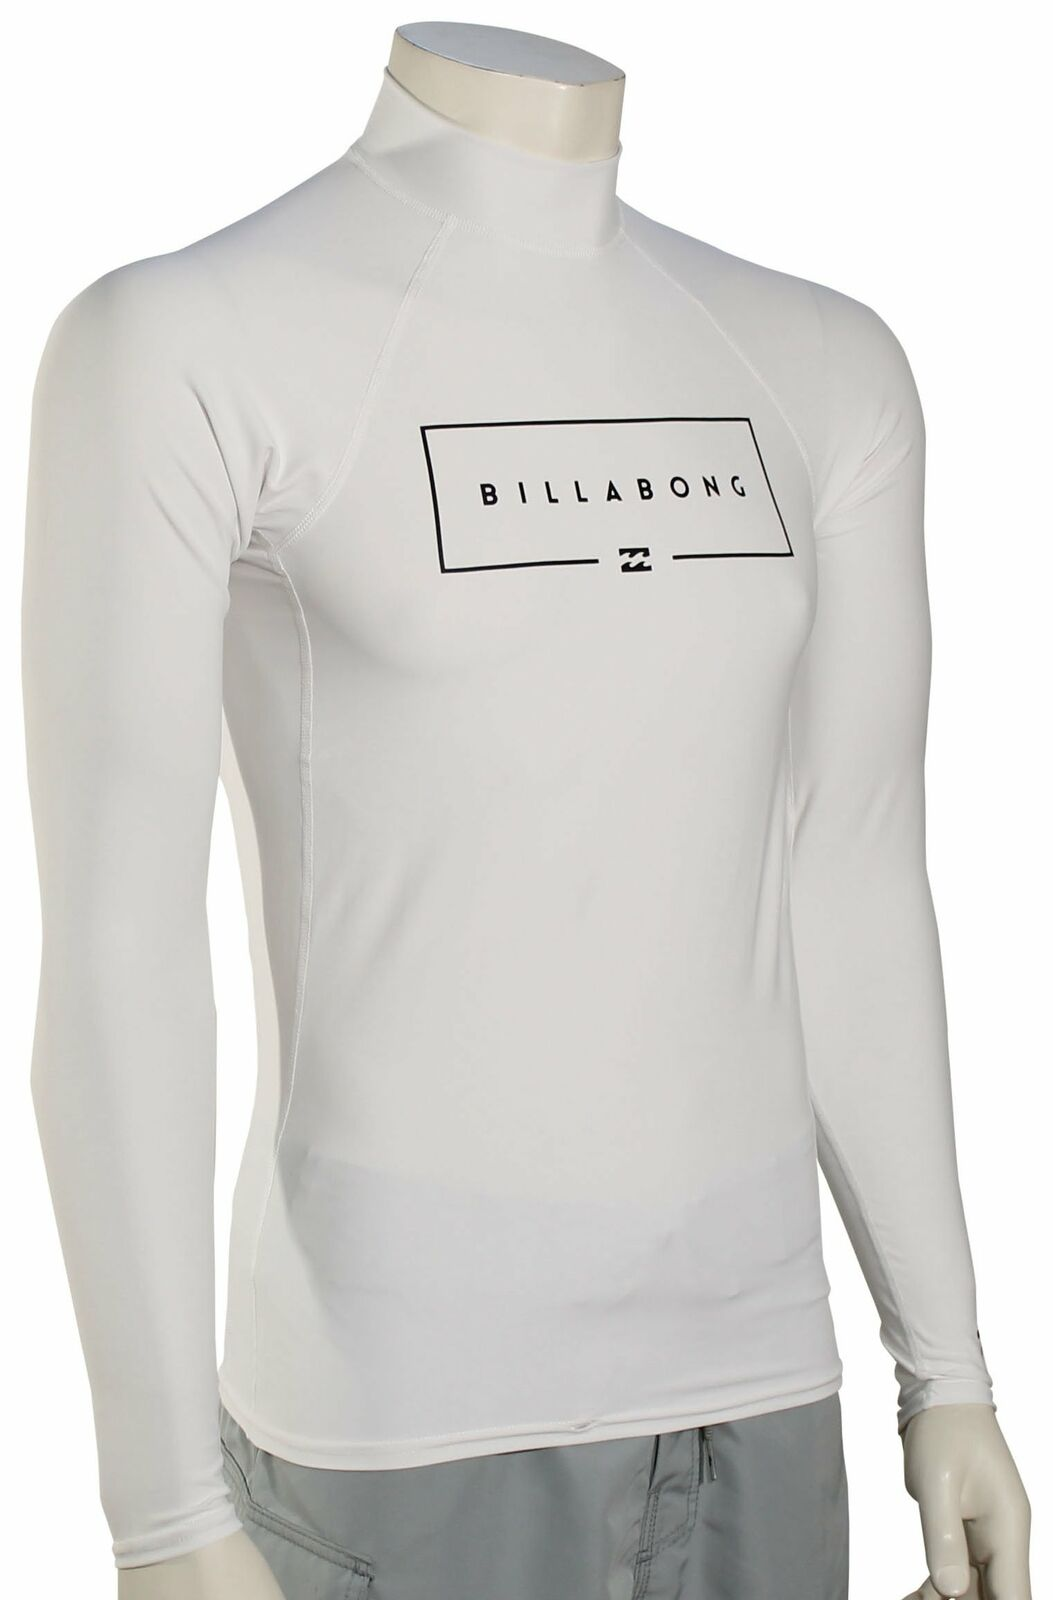 Billabong Union  Wave LS Rash Guard - White - New  welcome to buy